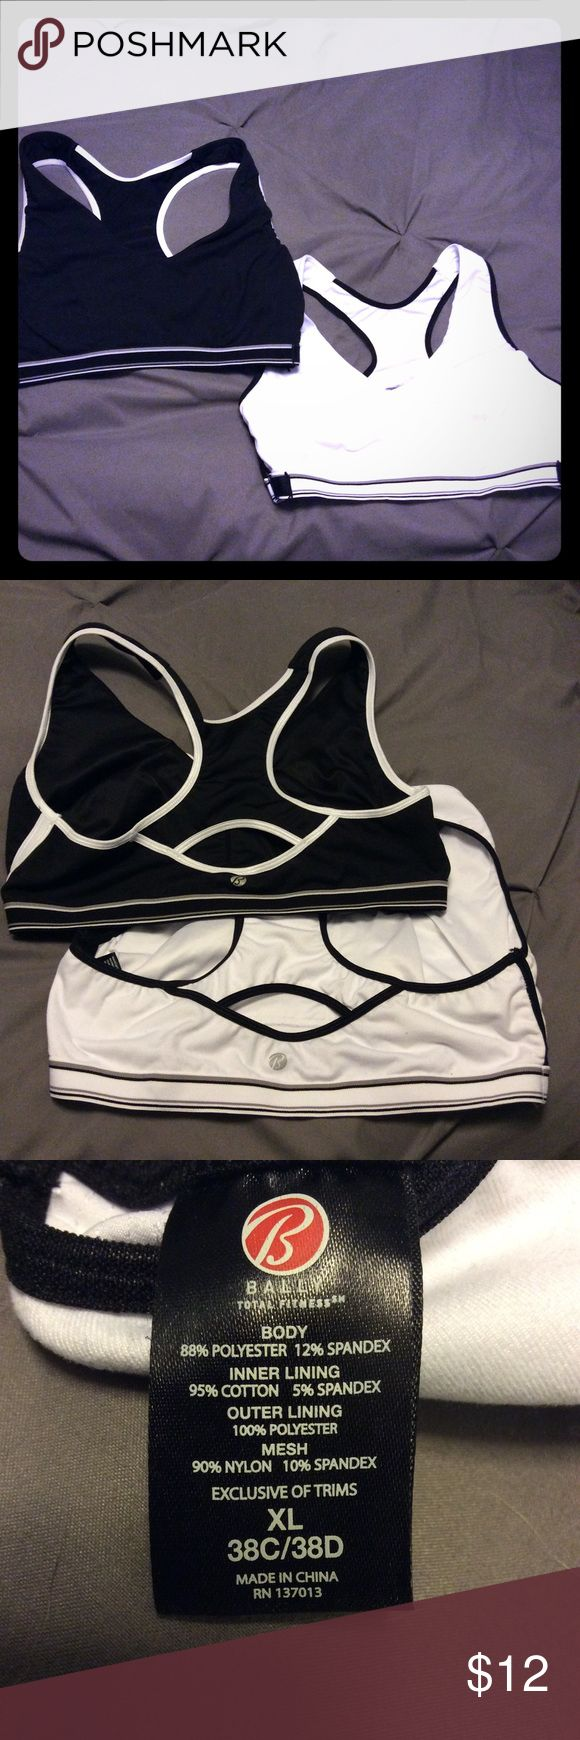 Bally sports bras! Size ️XL 2 Bally fitness sports bras - black and white. Such a great and supportive design. Size ️XL, see sizes on tag. However I wore at 36DD. Adjustable. Place for optional extra padding, like bikini pad inserts if you wanted. Sorry no trades, I only sell thru posh. Make a bundle for even more savings! ✨📦📫 Other